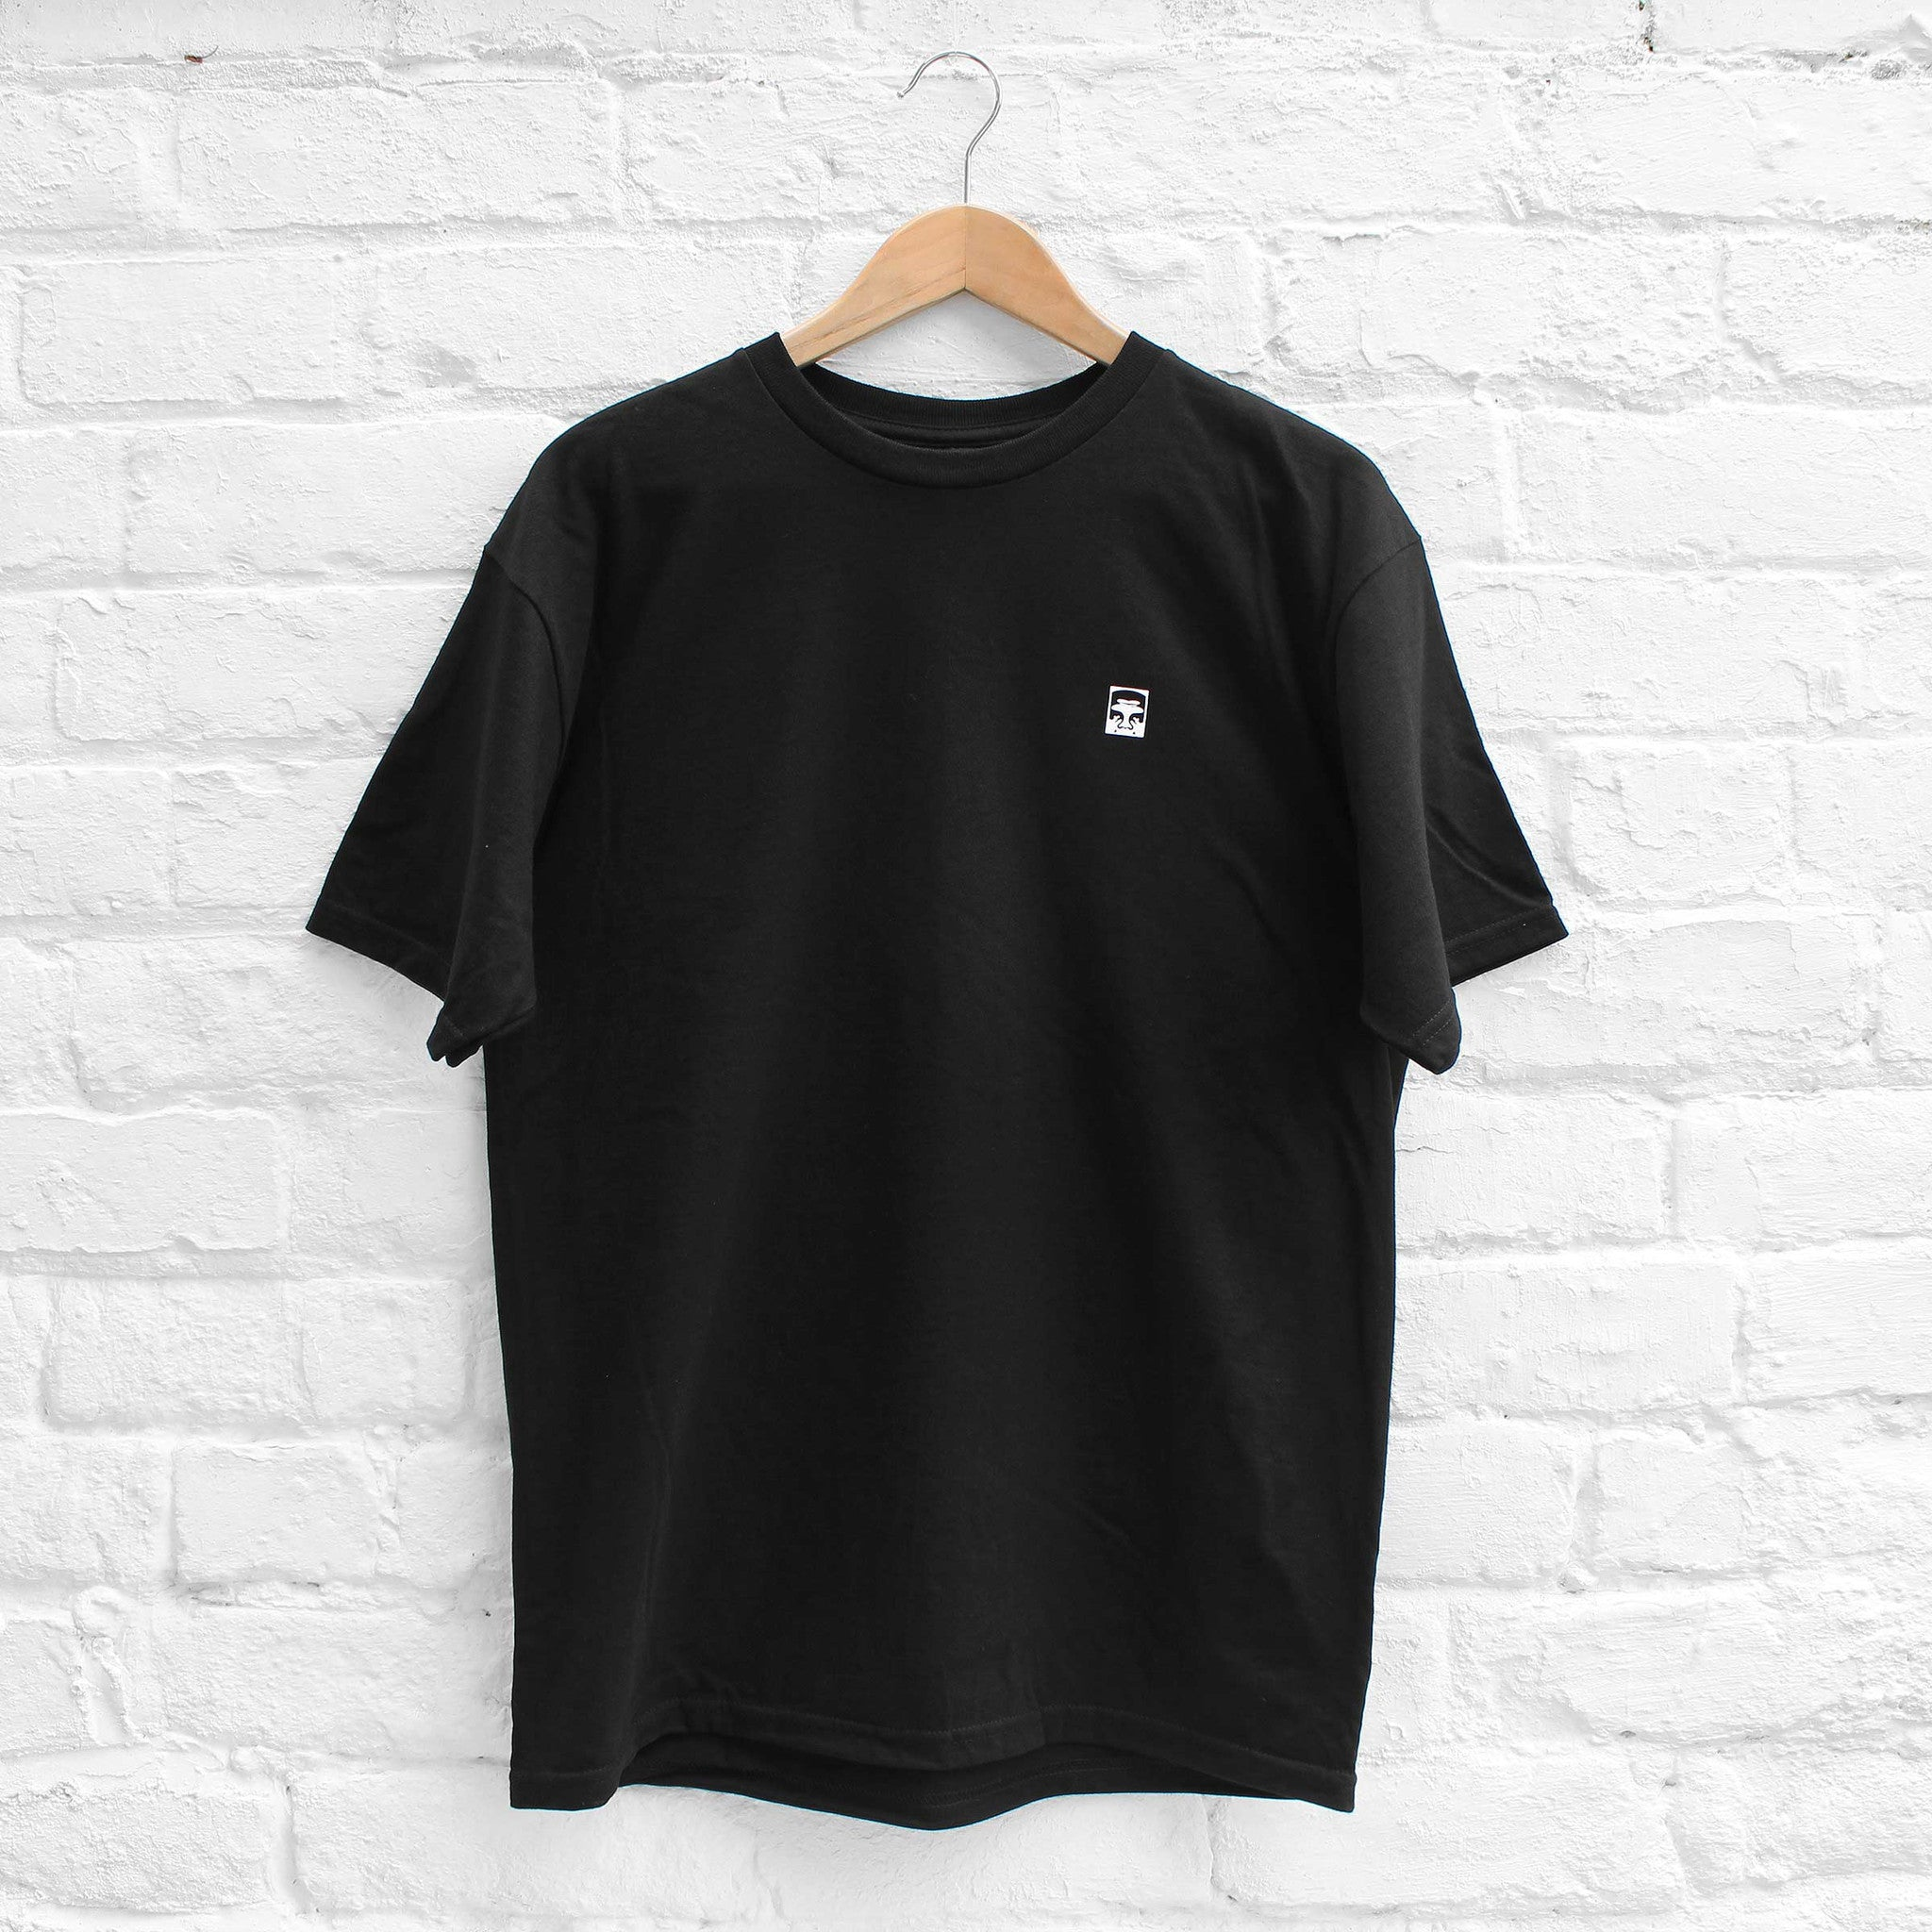 Obey Half Face Mil Spec T-Shirt